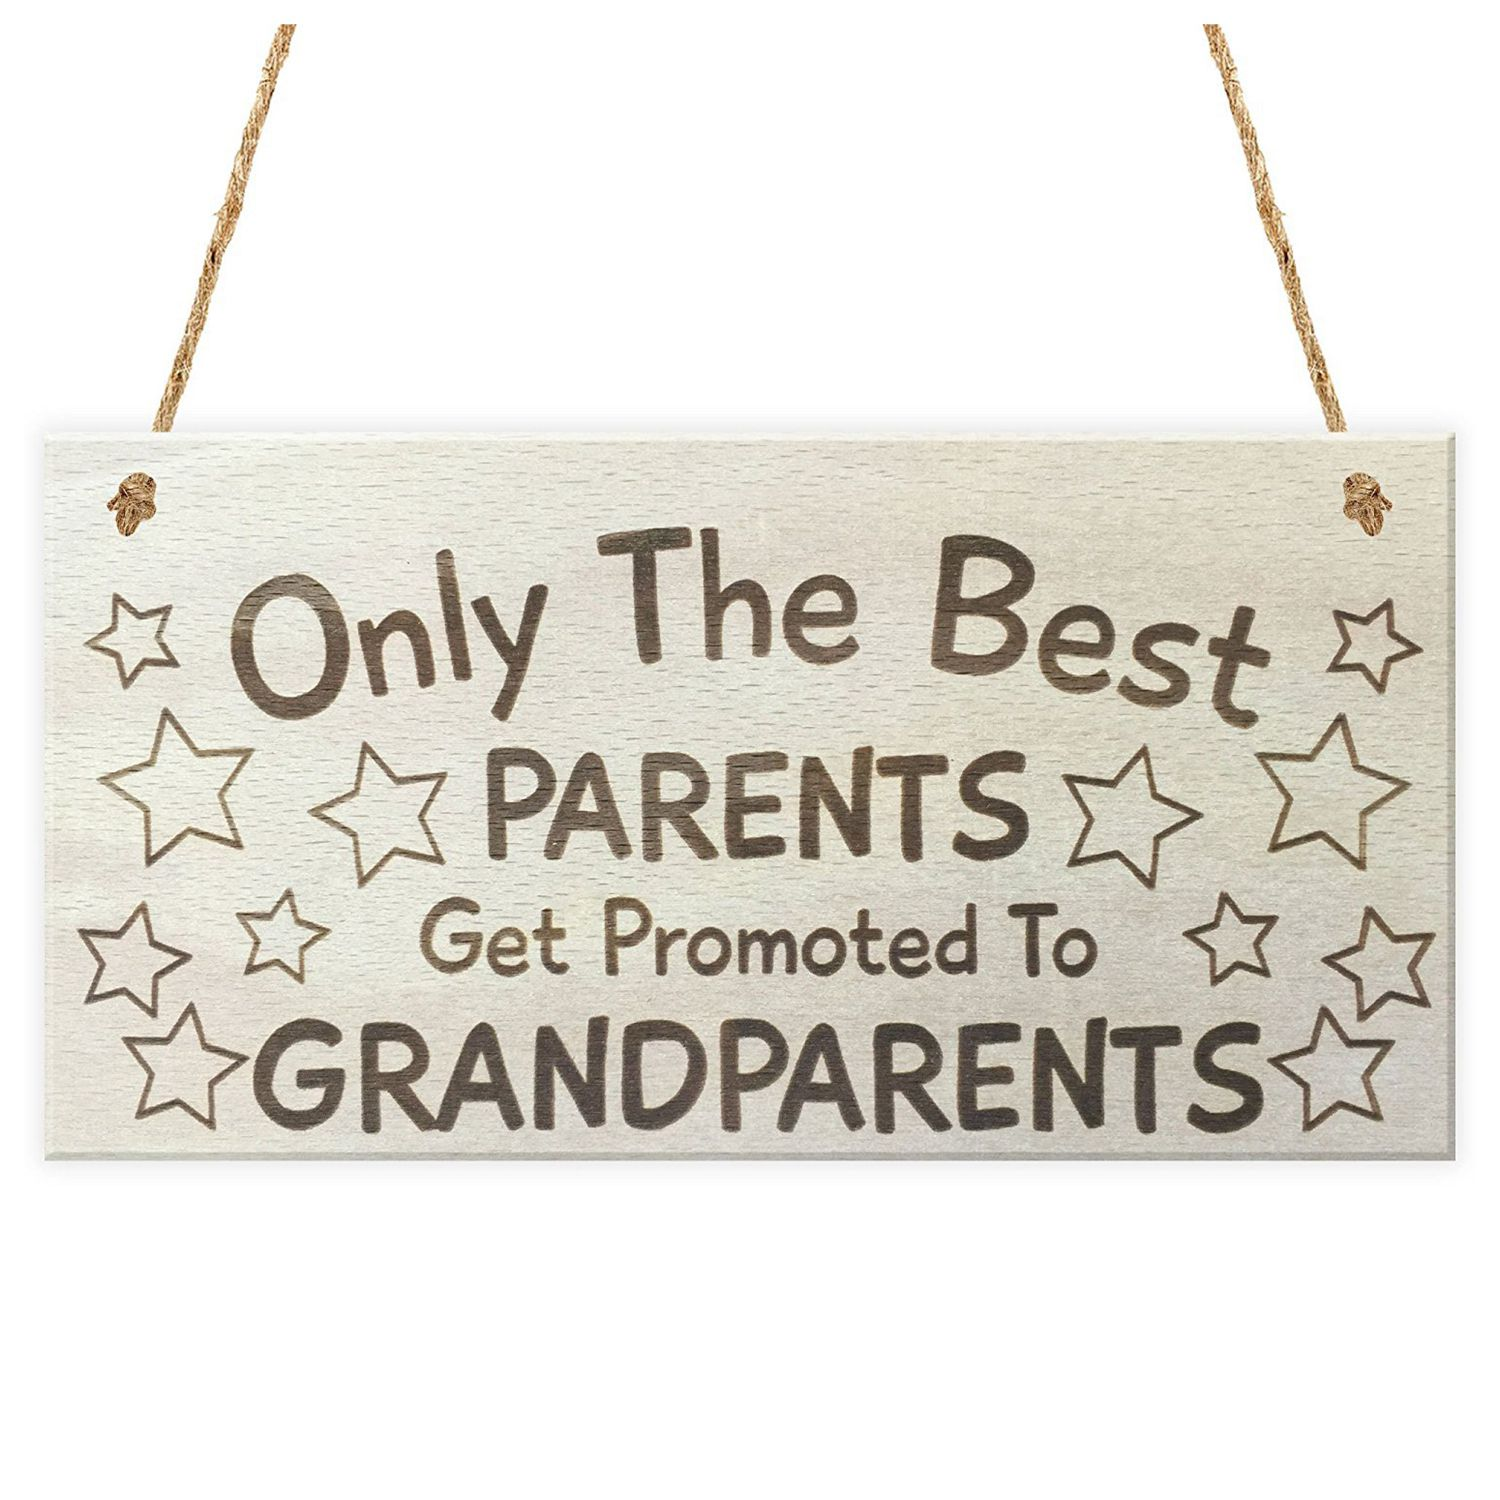 Only The Best Parents Get Promoted To Grandparents Hanging Wooden Plaque Sign